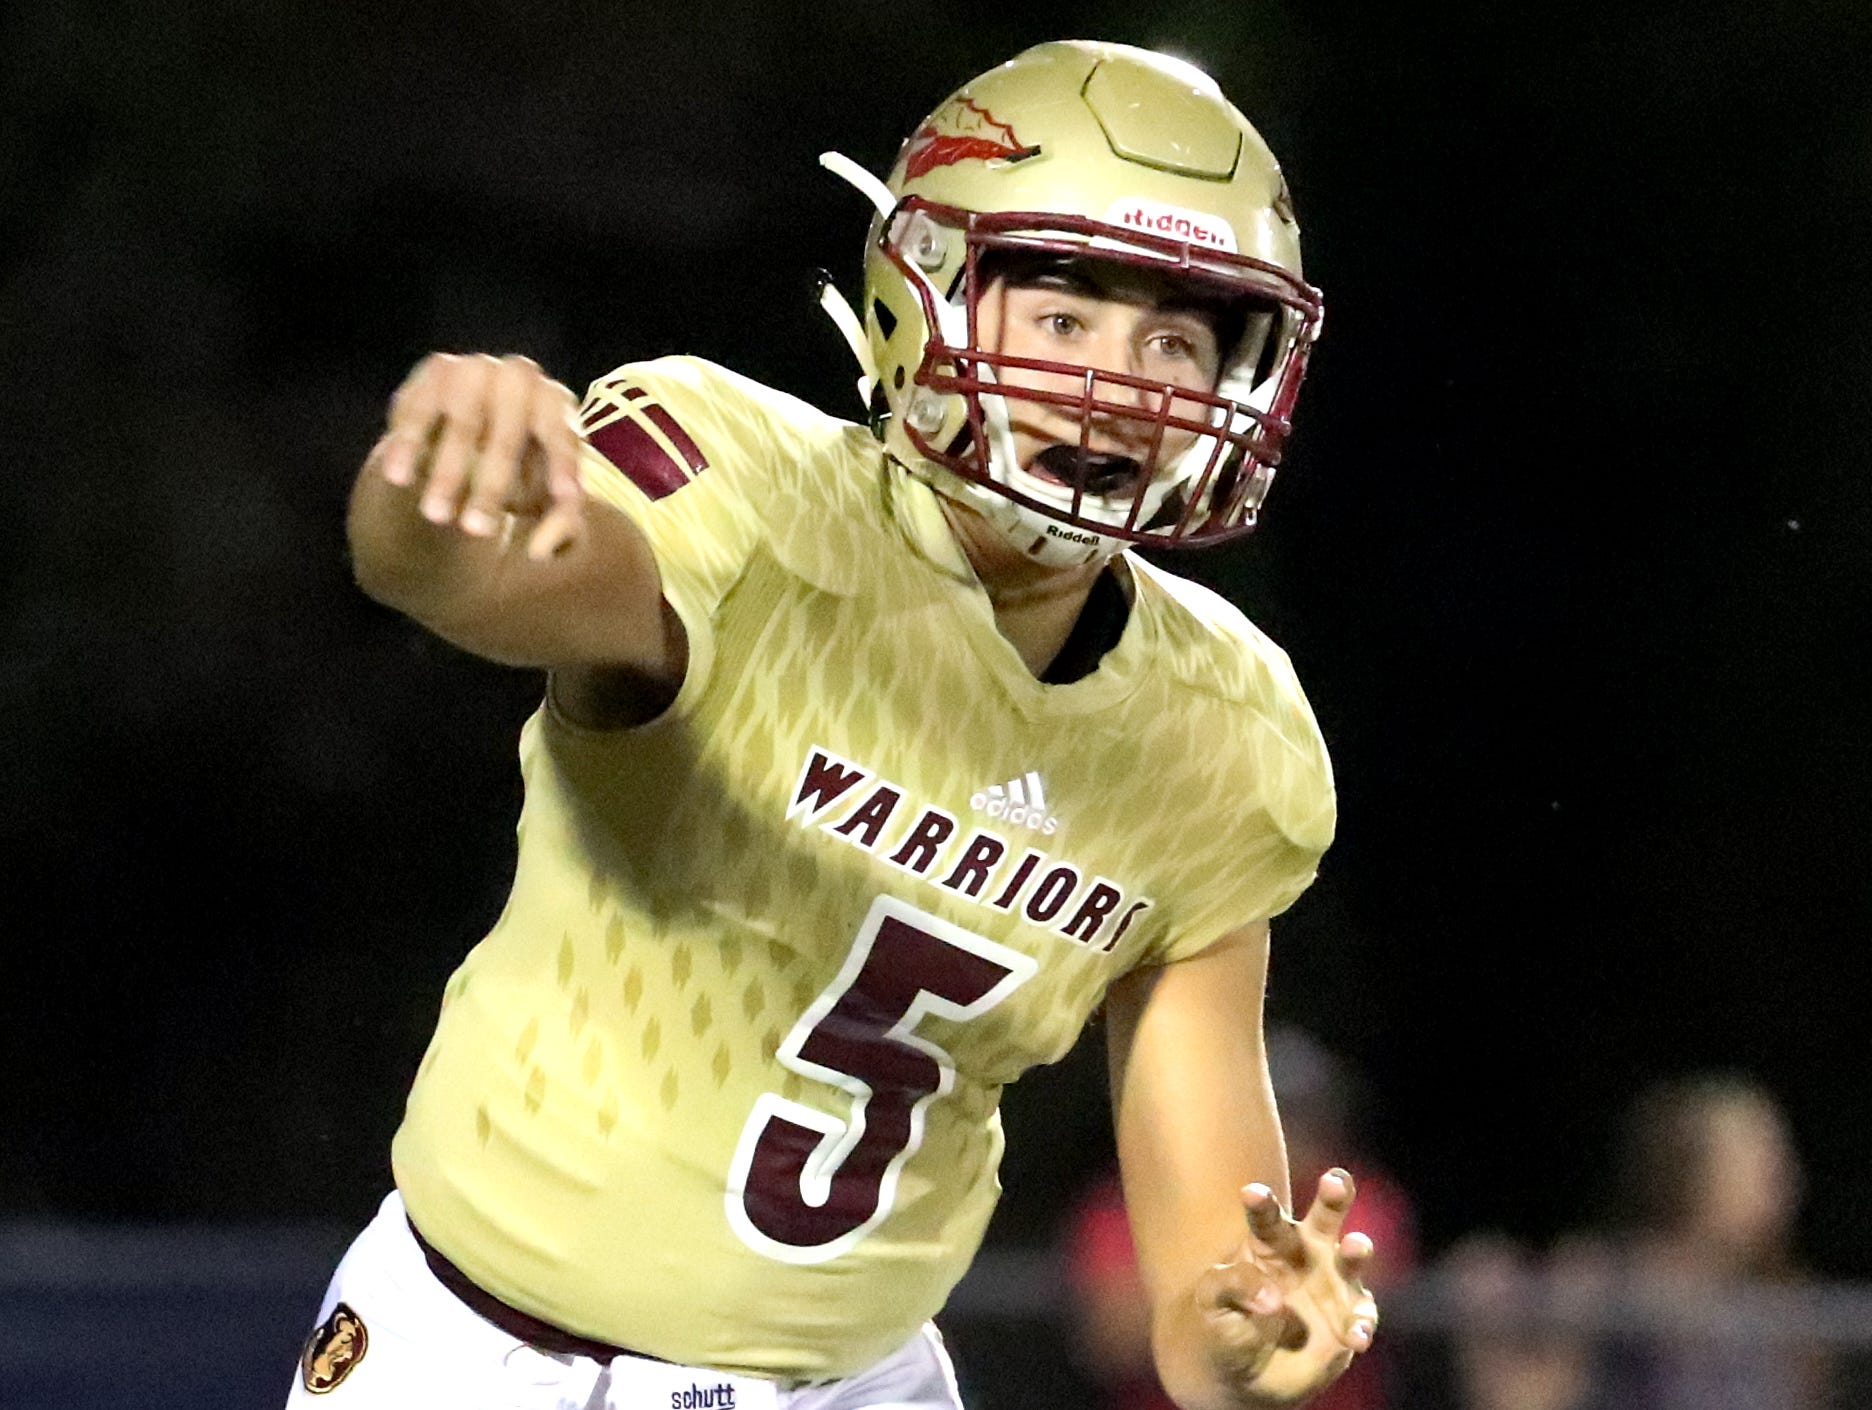 Riverdale's quarterback Taylor Yancey (5) passes the football during the game against Oakland at Riverdale during the Battle of the Boro on Friday, Sept. 14, 2018.